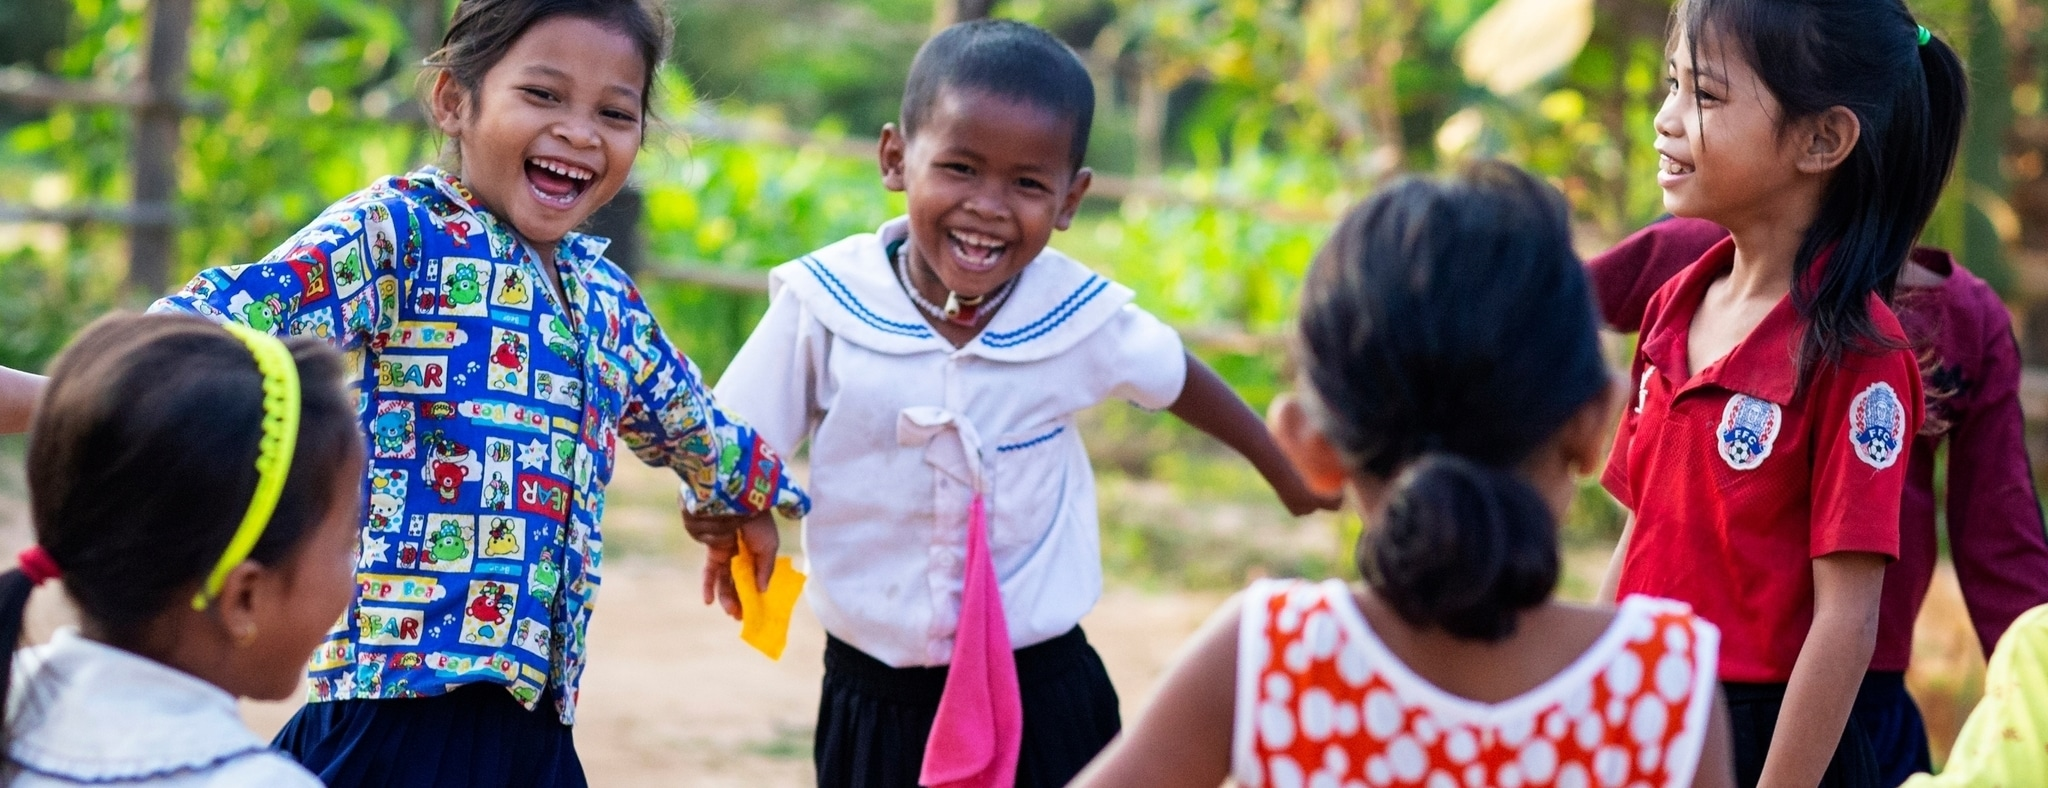 UK charity helping children abroad